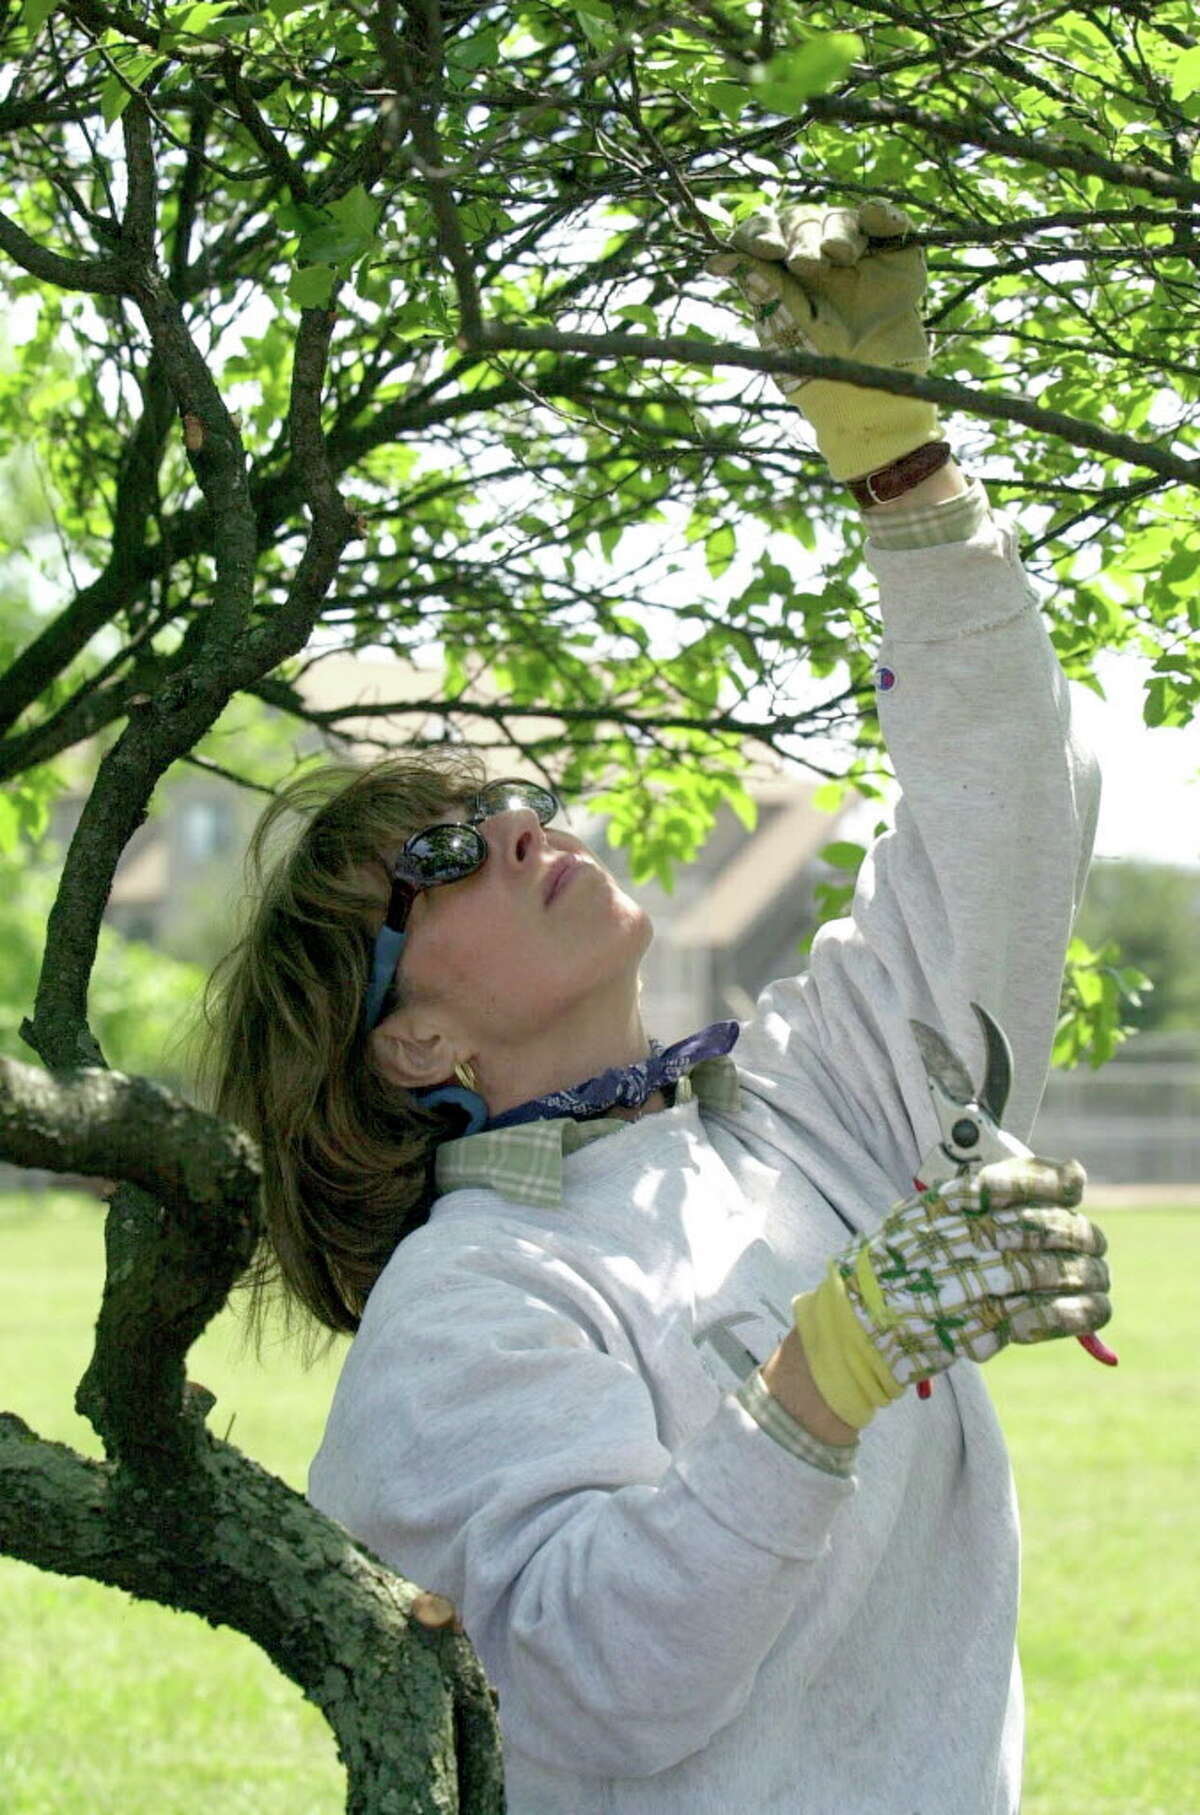 A member of the Shippan Point Garden Club clearing out and planting in a section of West Beach Park. The group will hold their annual fundraising sale to support their planting, tree replacement and other activities on May 7. Kathleen O'Rourke/File Photo